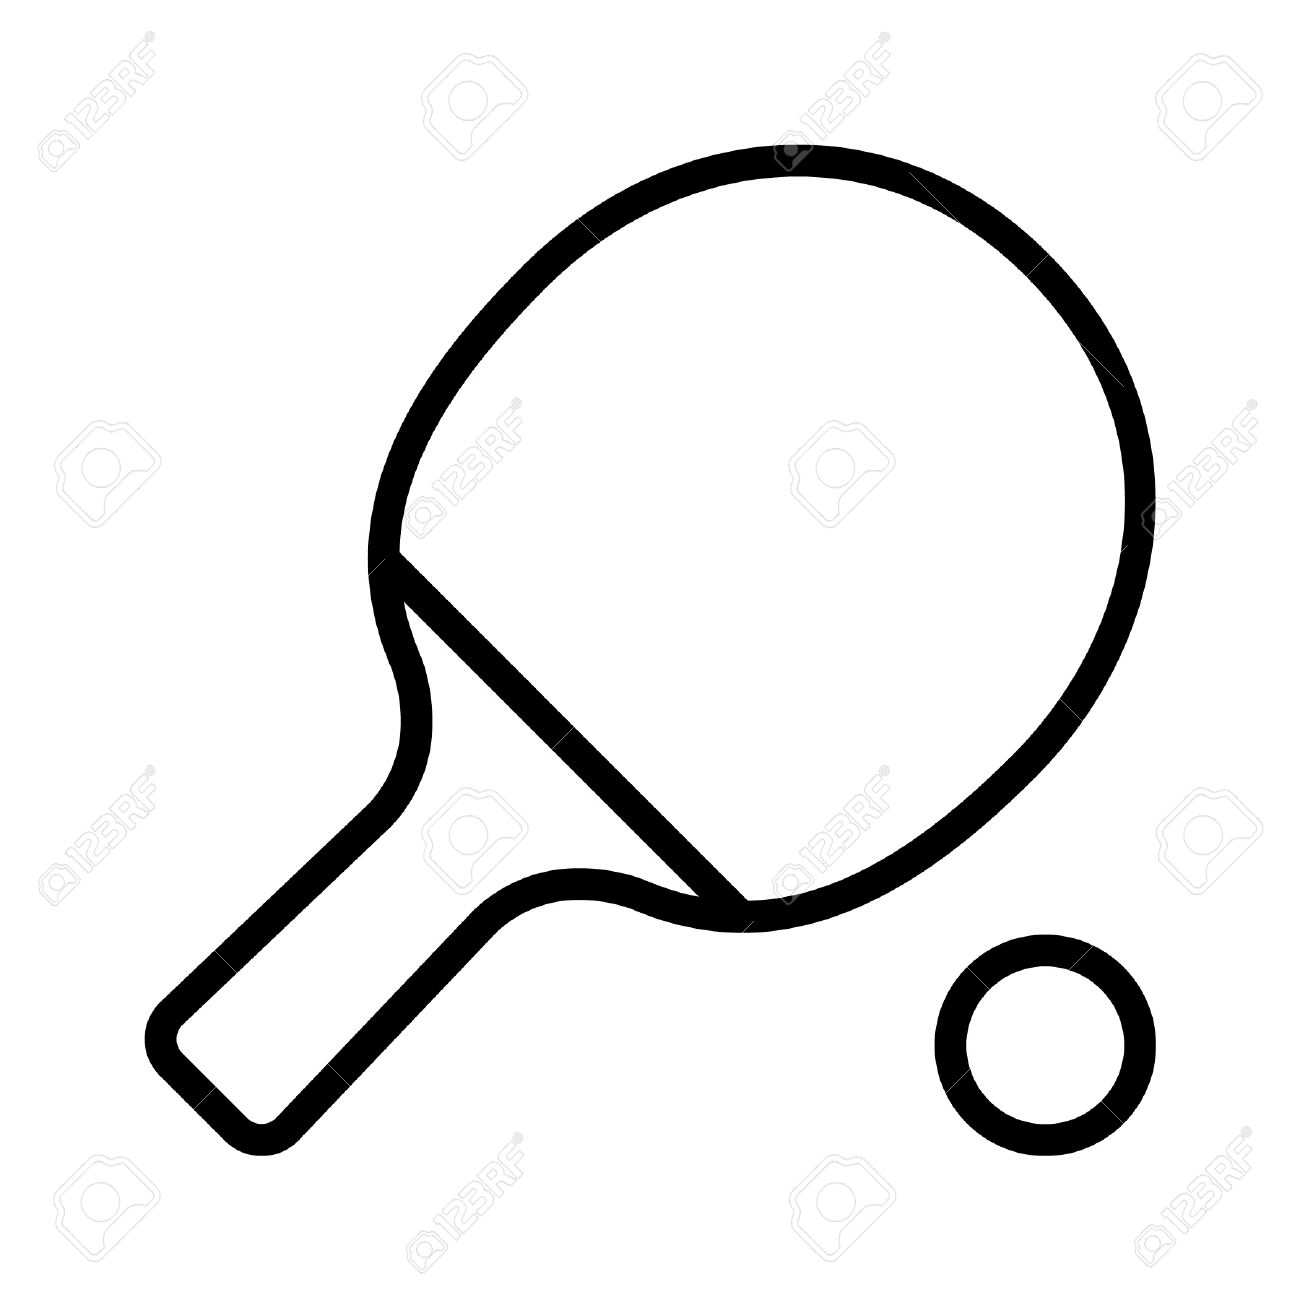 Ping-pong paddle clipart 20 free Cliparts | Download ...